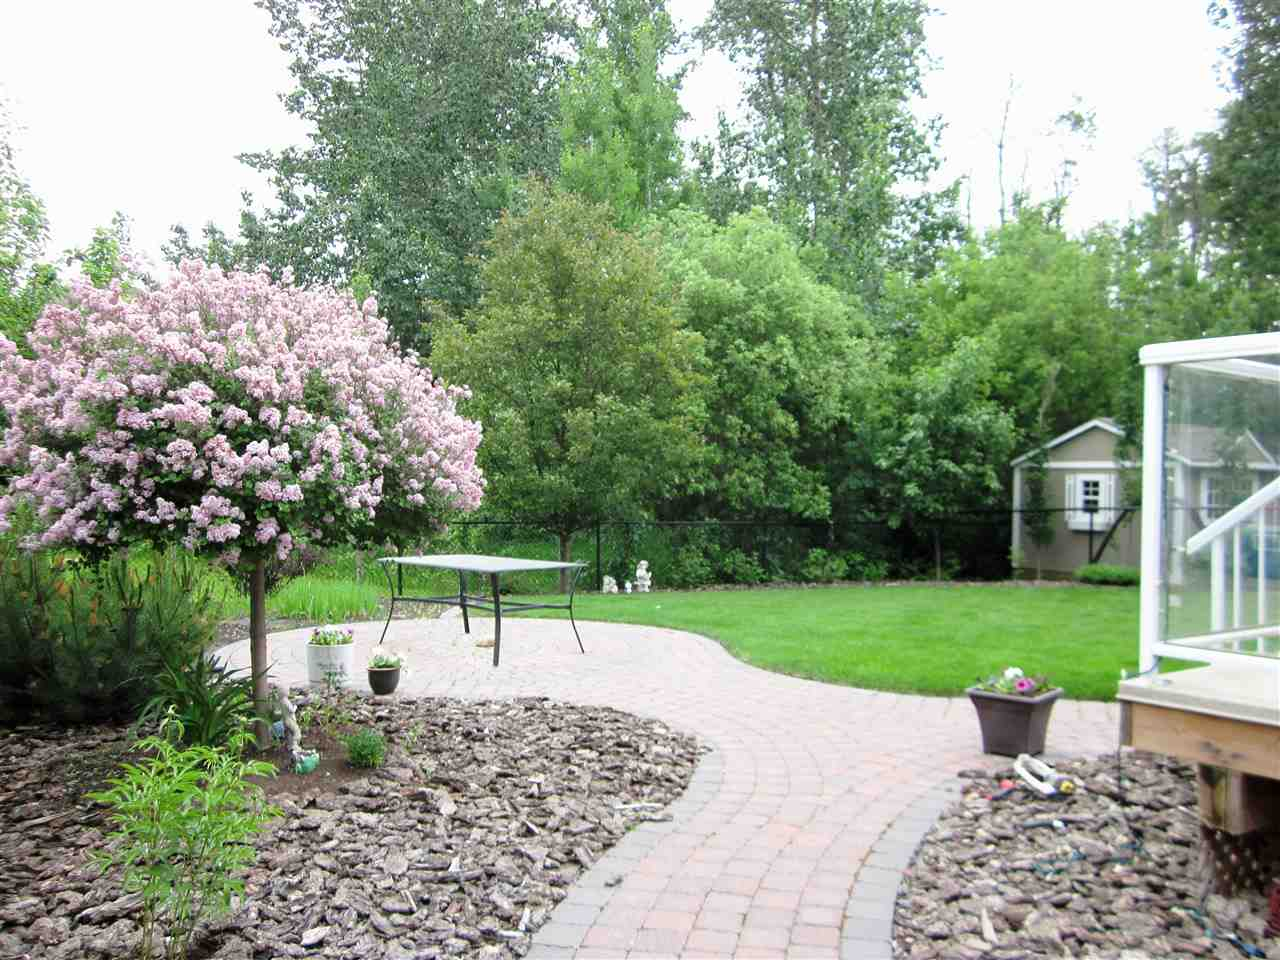 Beautifully landscaped backyard with patio and backing onto the treed area.